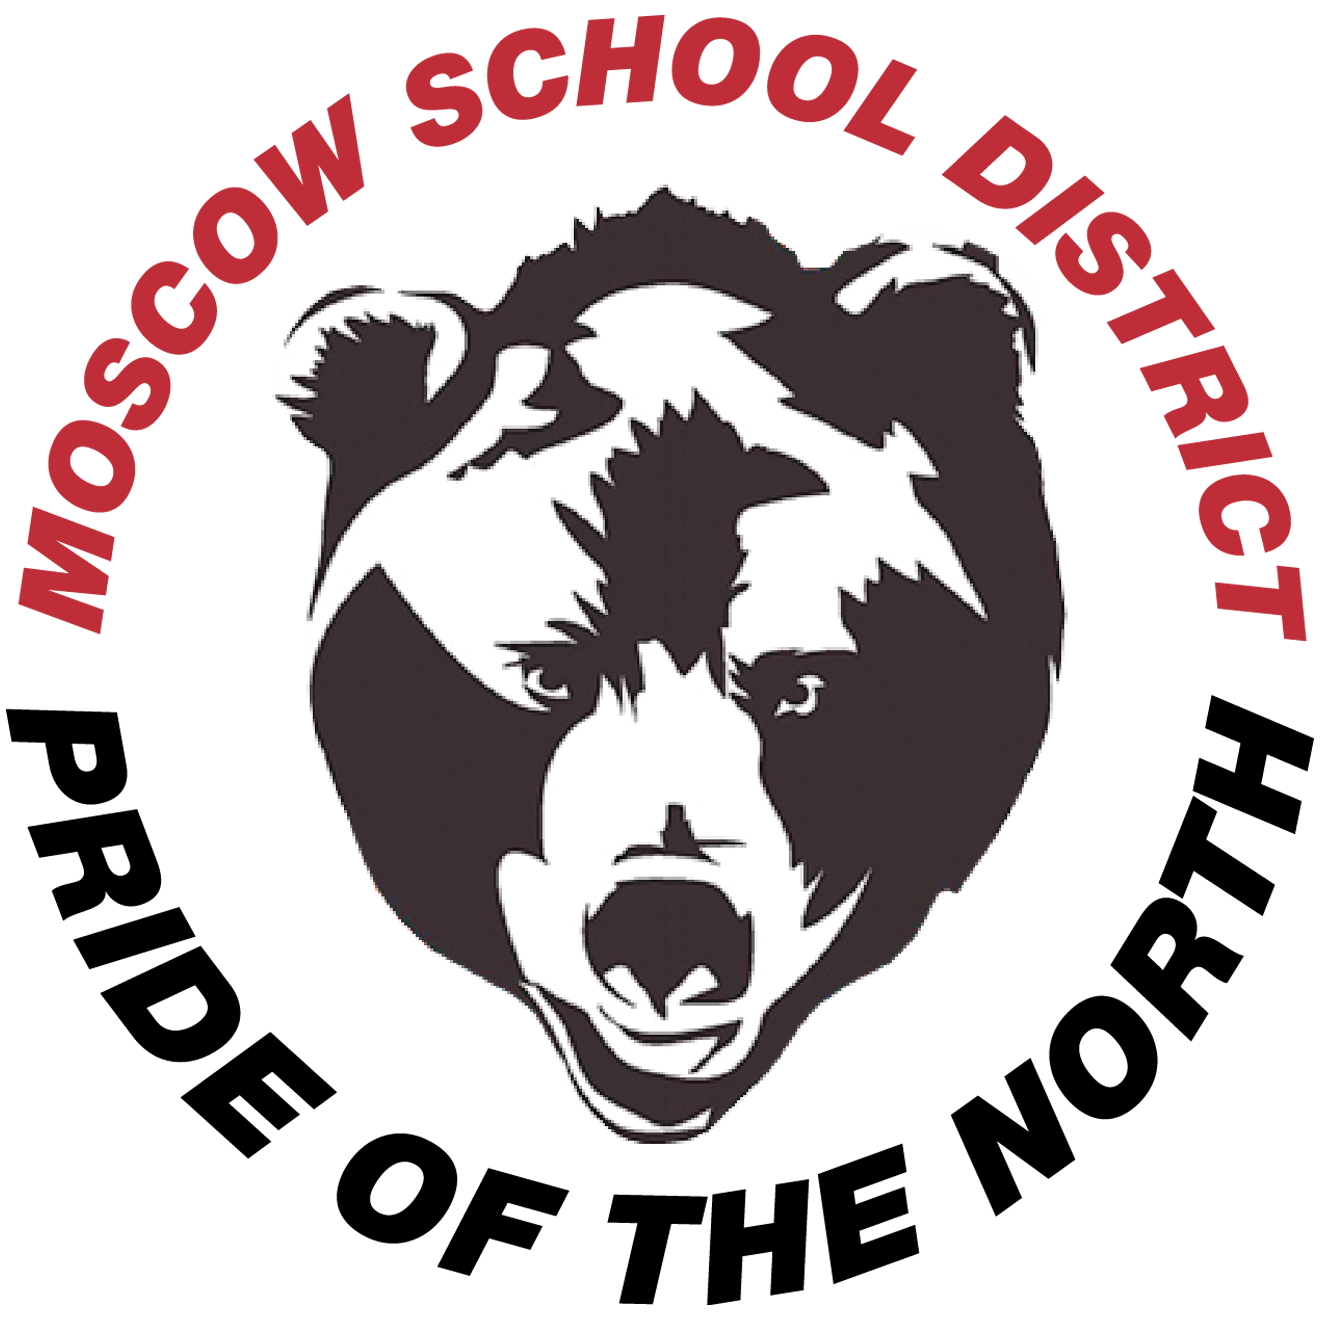 Moscow School District